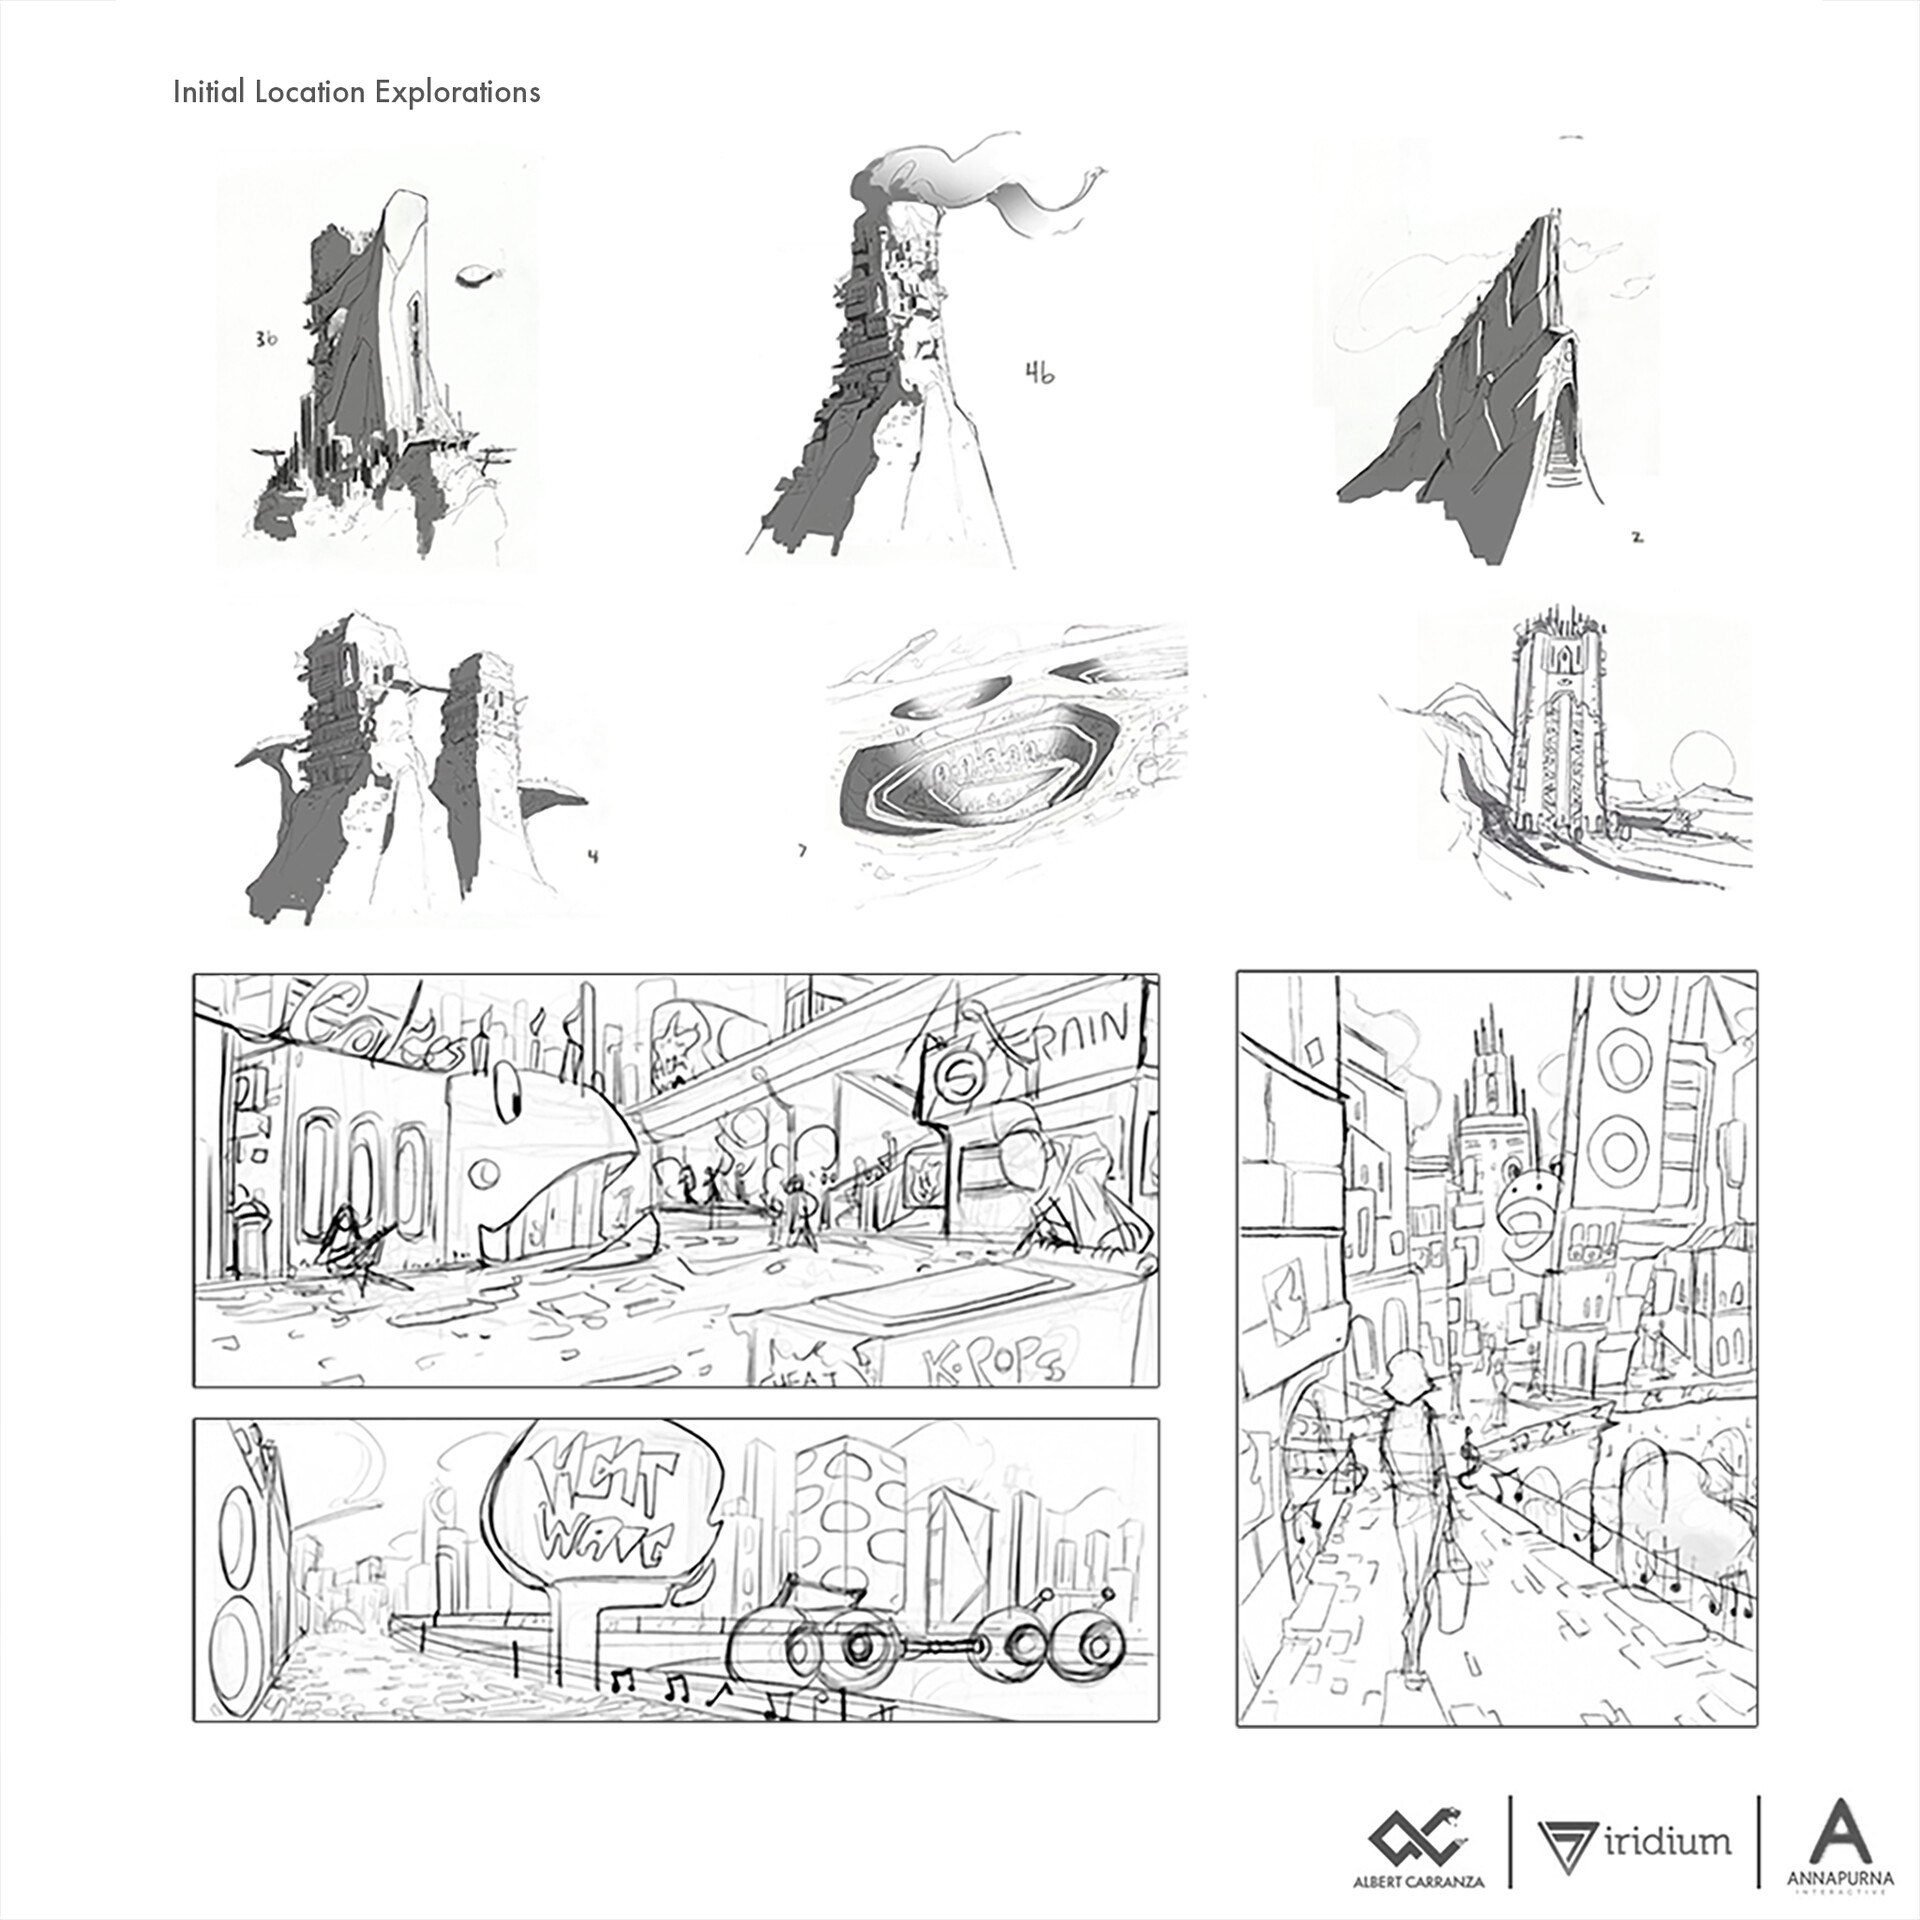 Concepts for an RPG from Iridium Games and Annapurna Interactive